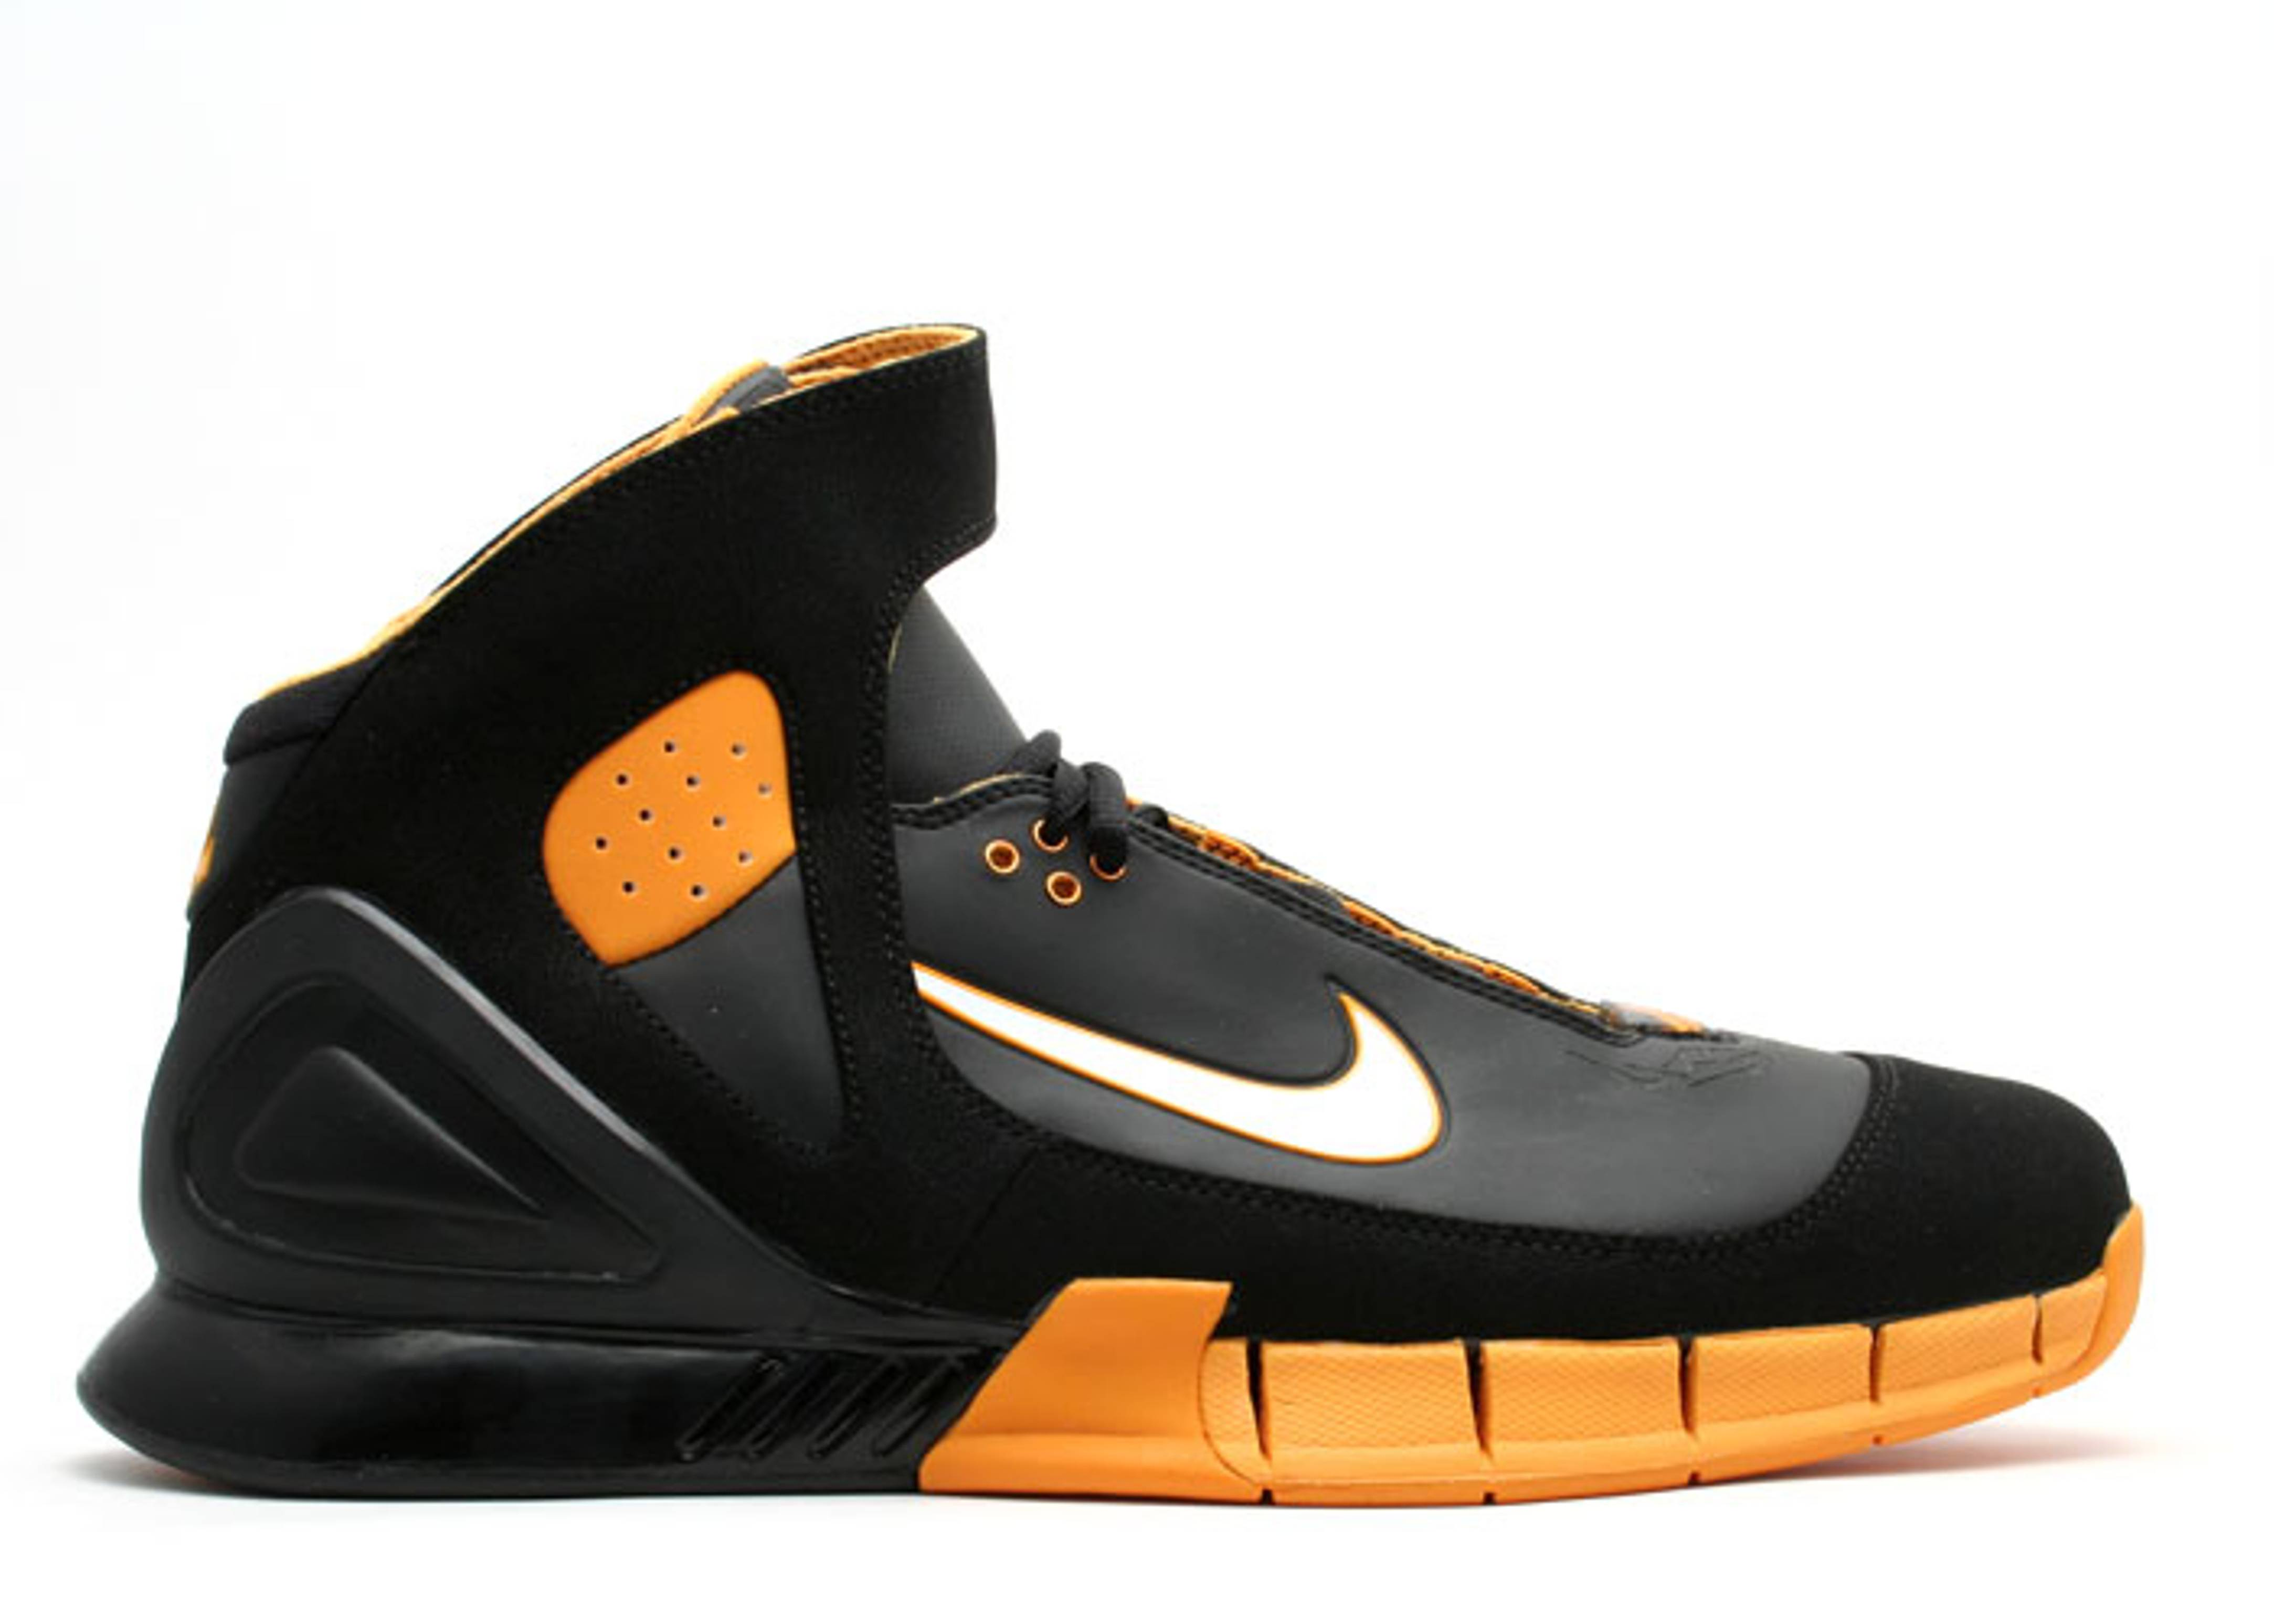 d82bb0ec4b84a ... ireland zoom huarache 2k5 kobe bryant player exclusive 5a6b9 60a77